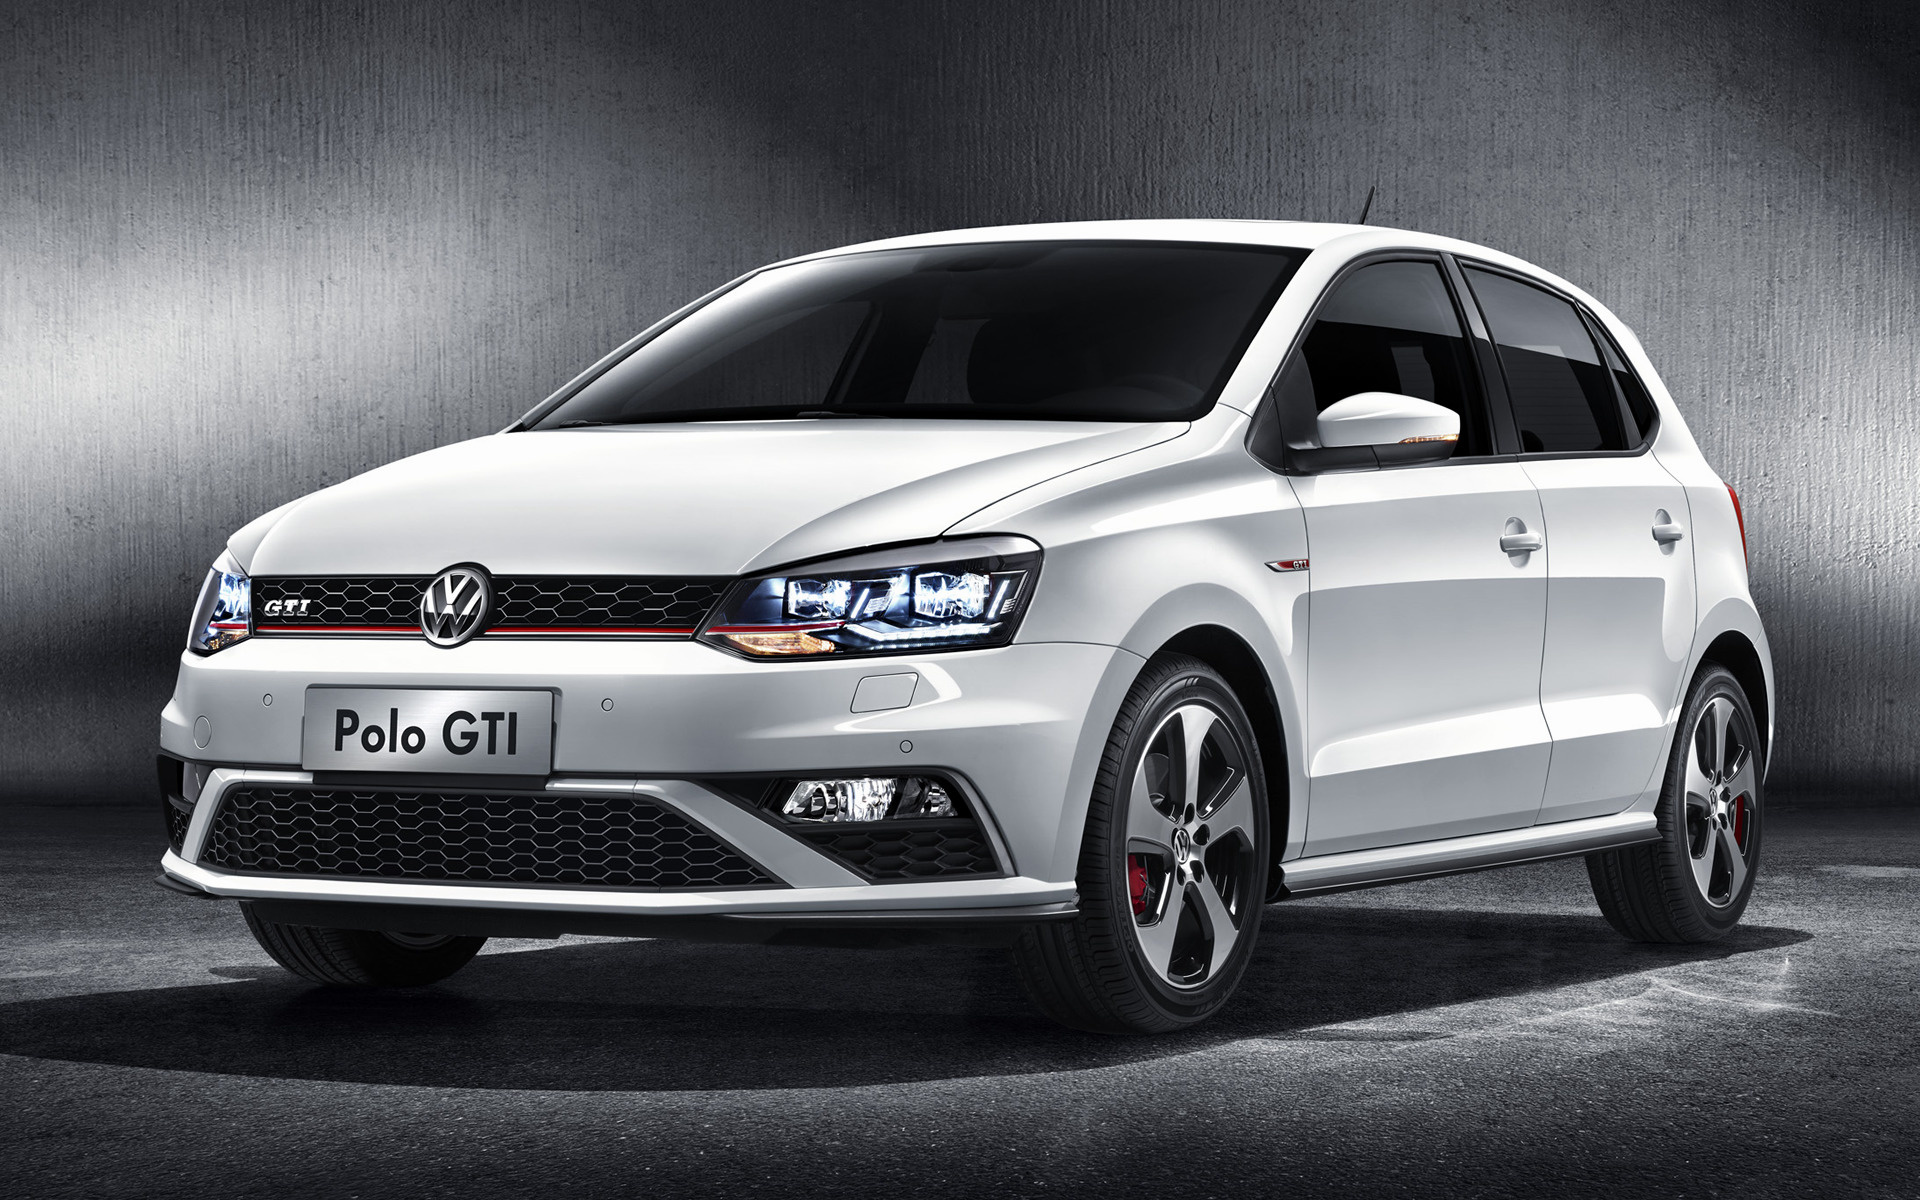 2015 Volkswagen Polo Gti 5 Door Cn Wallpapers And Hd